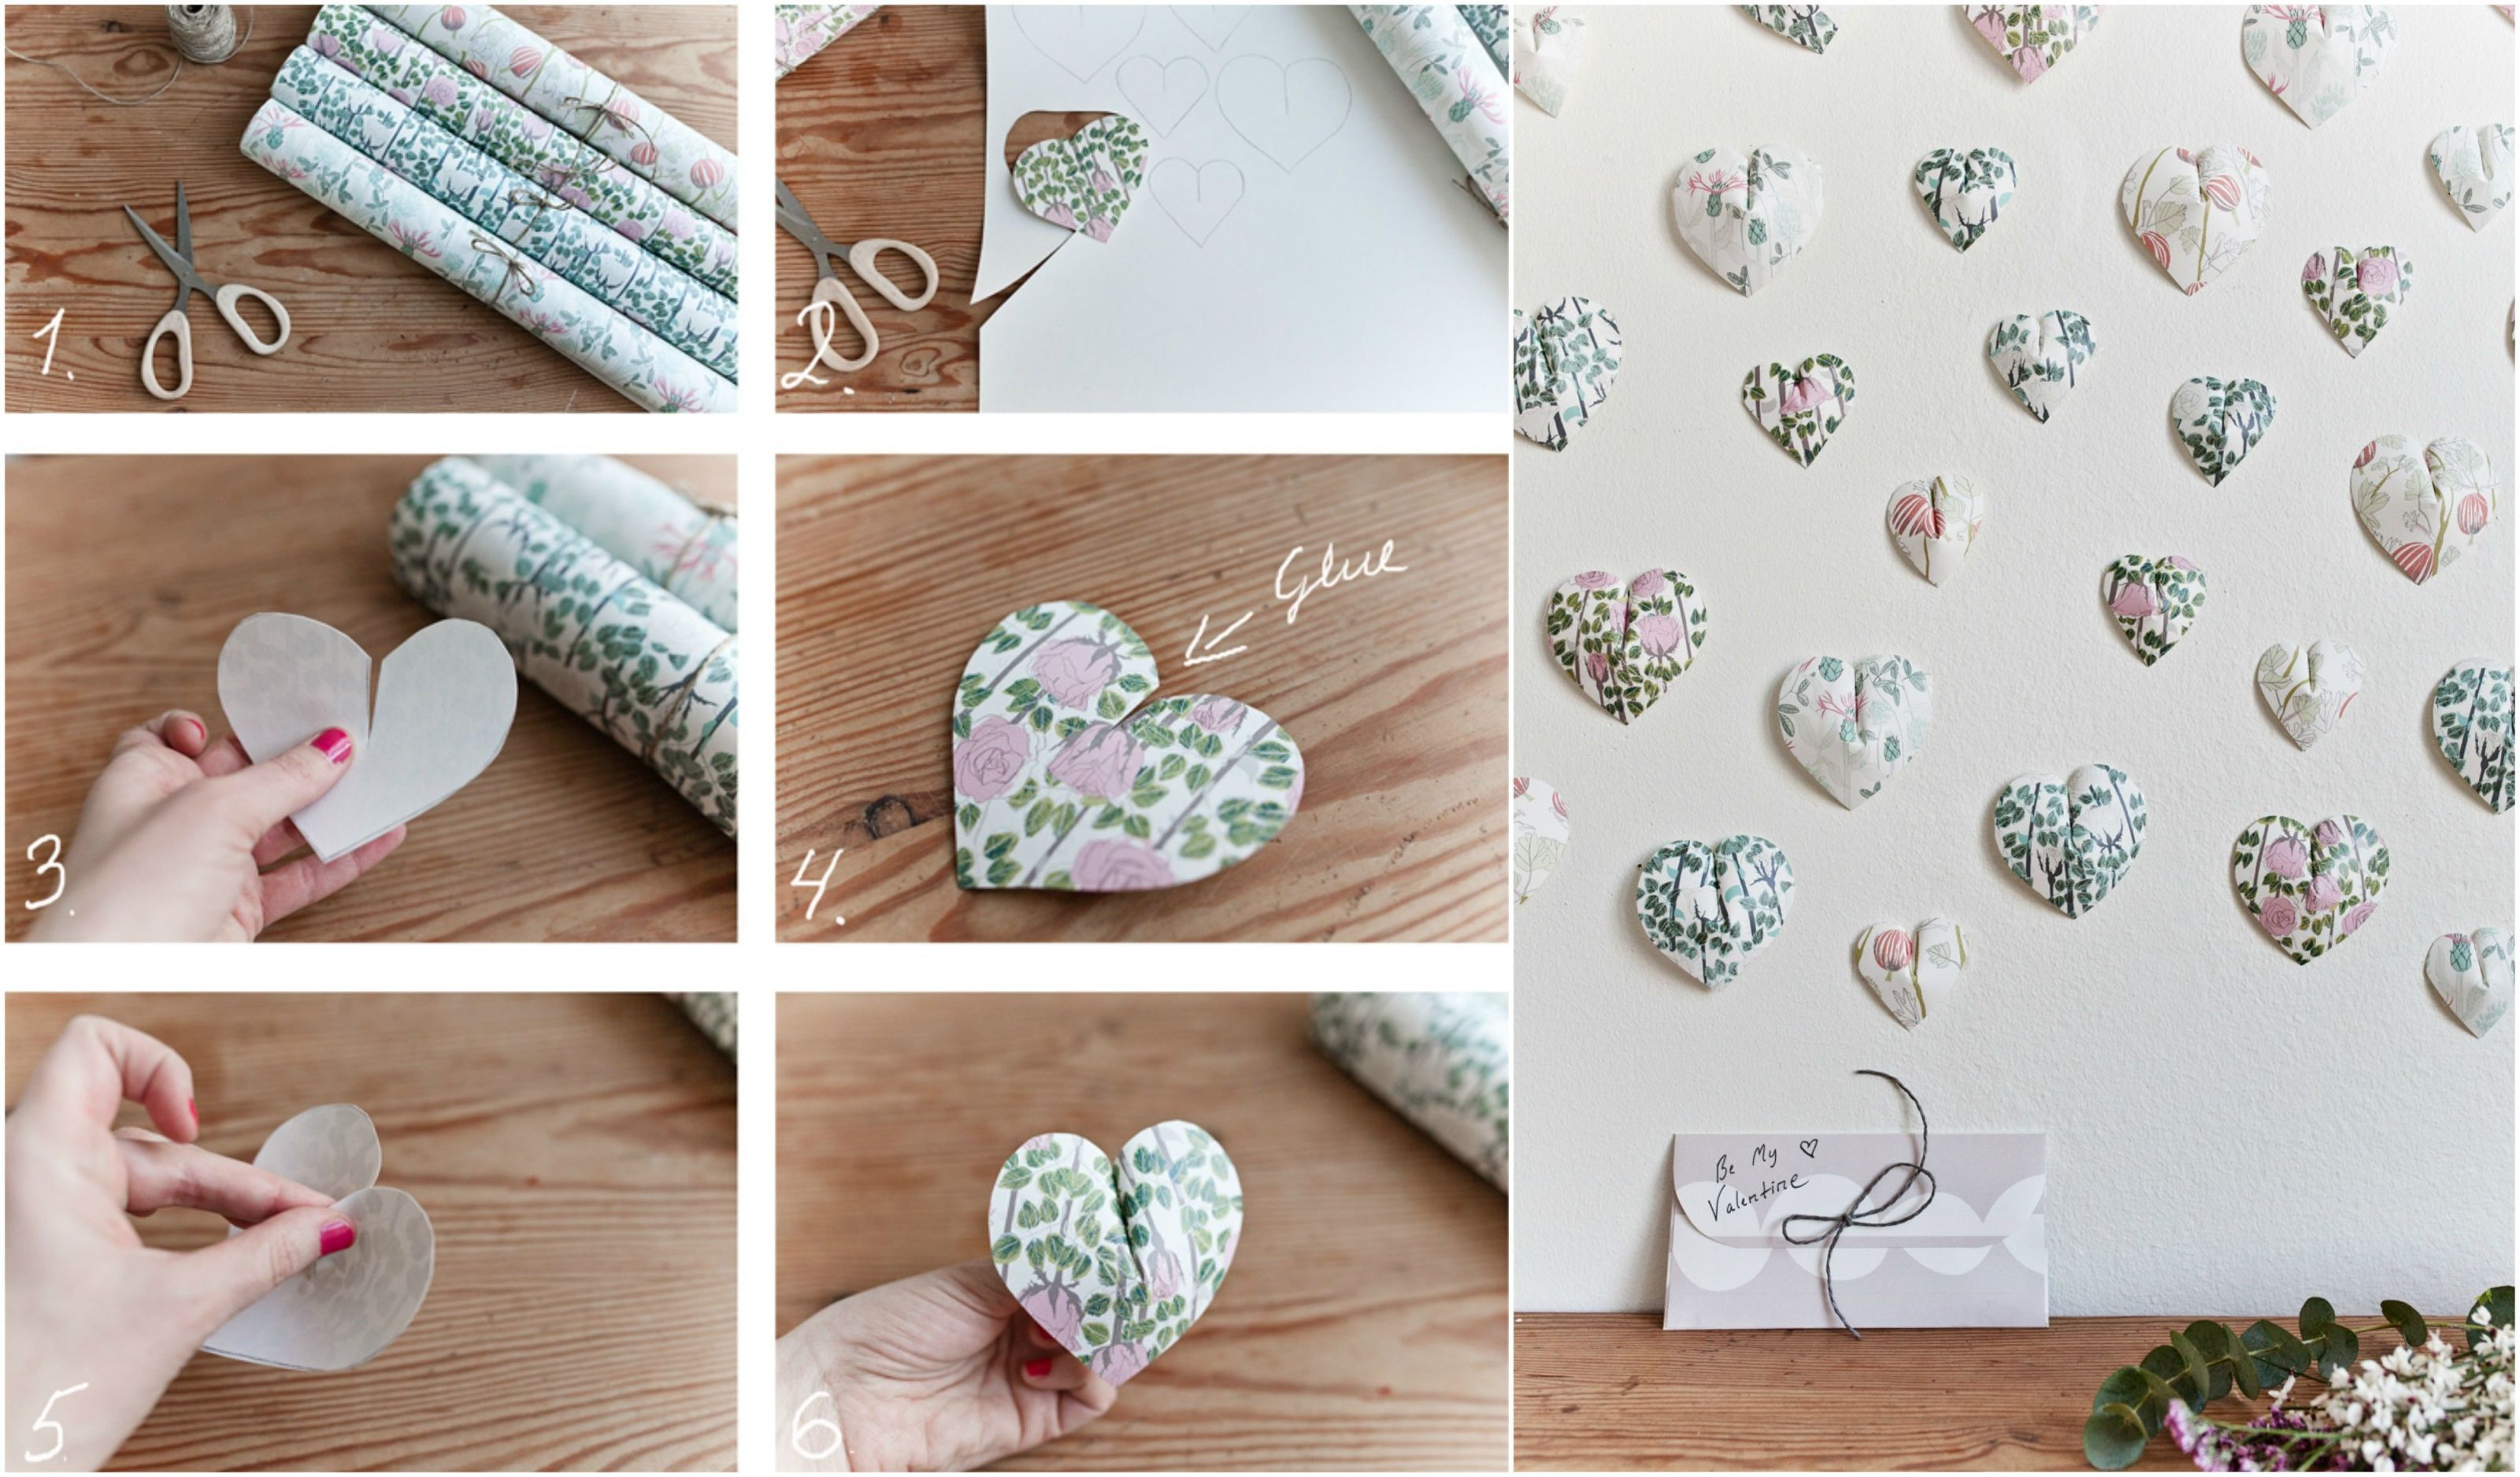 Photowall 3D Heart Wall Hanging: Wallpaper From Swedish Designer Plingsulli